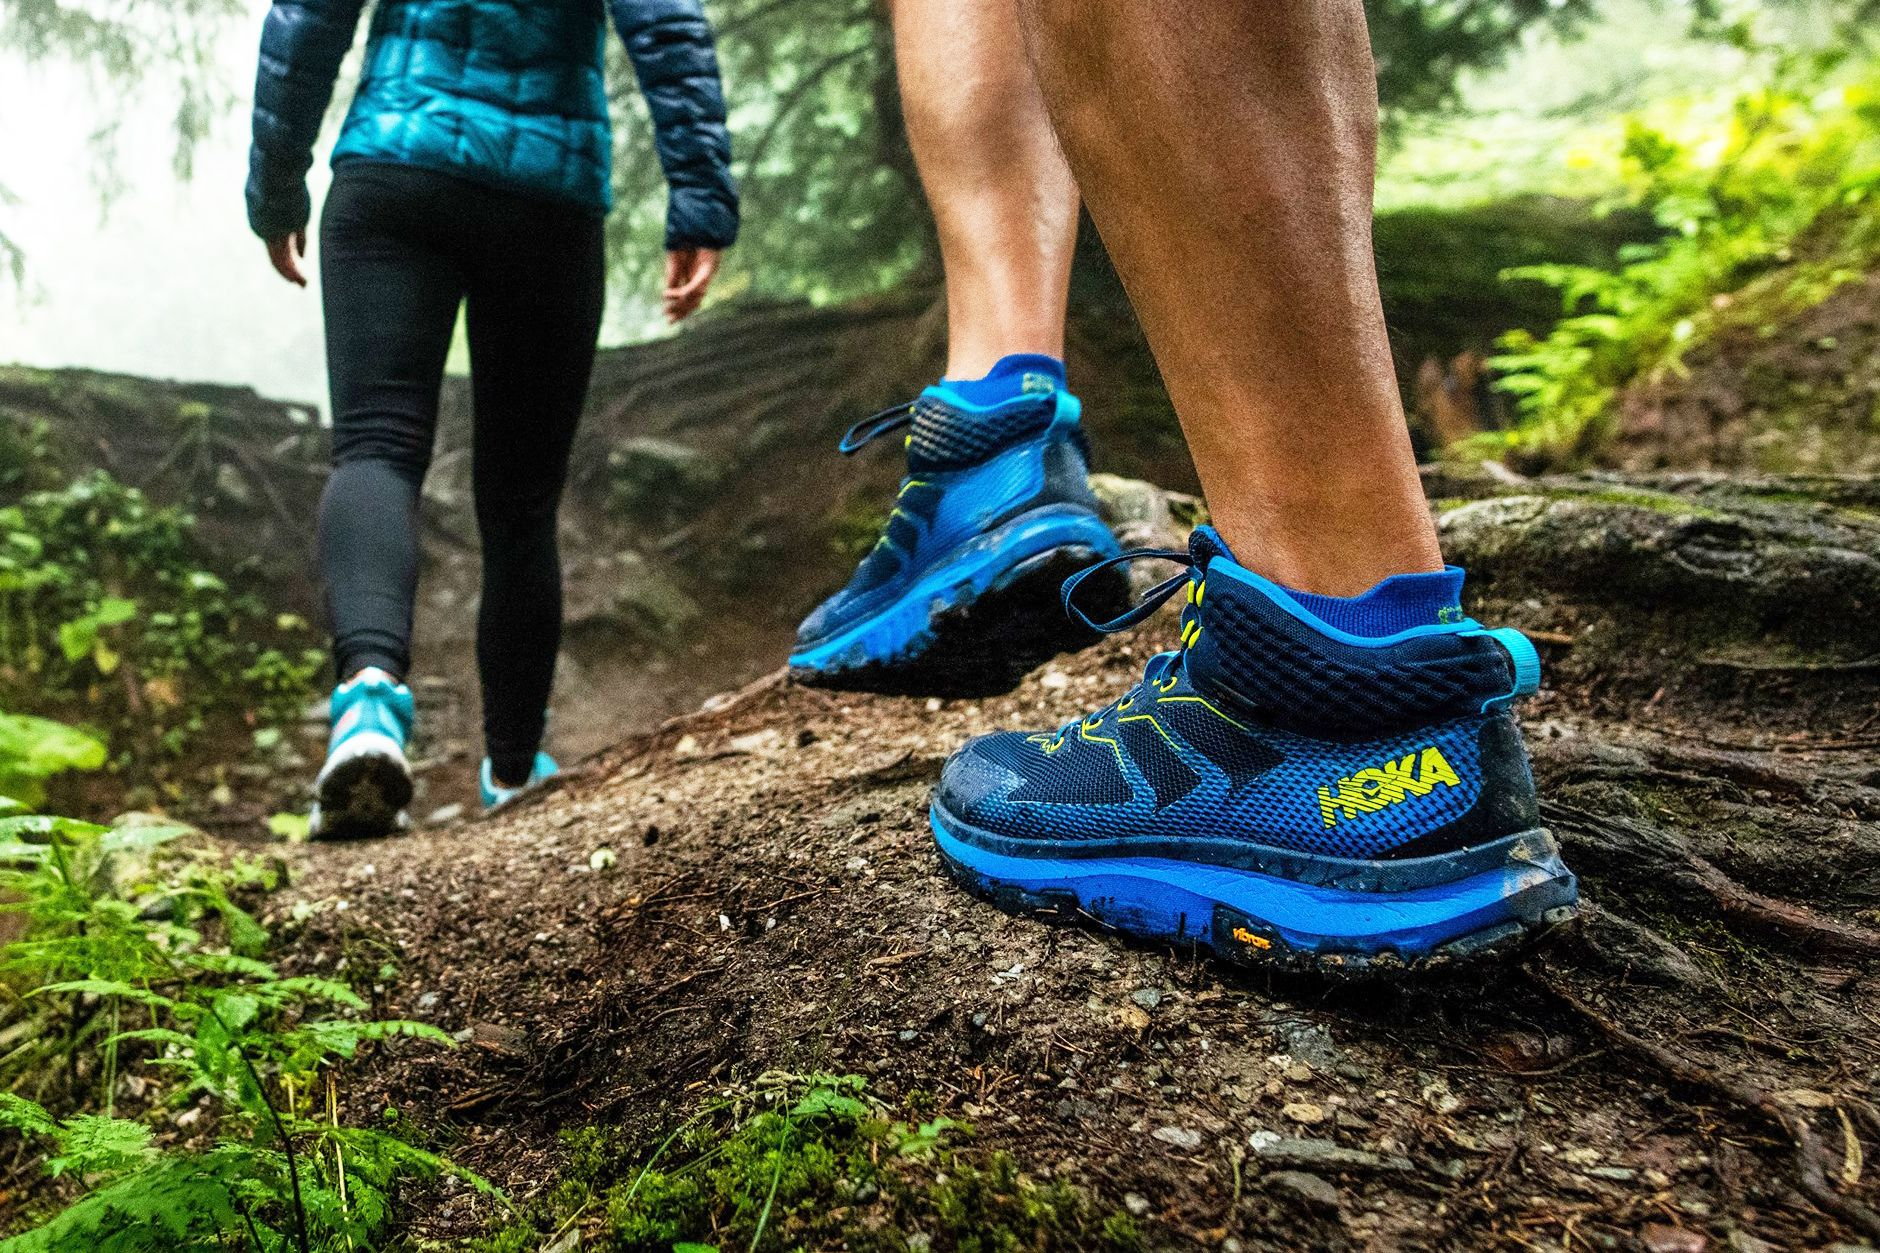 Hoka sneakers are exploding in popularity, boosting Ugg-owner Deckers